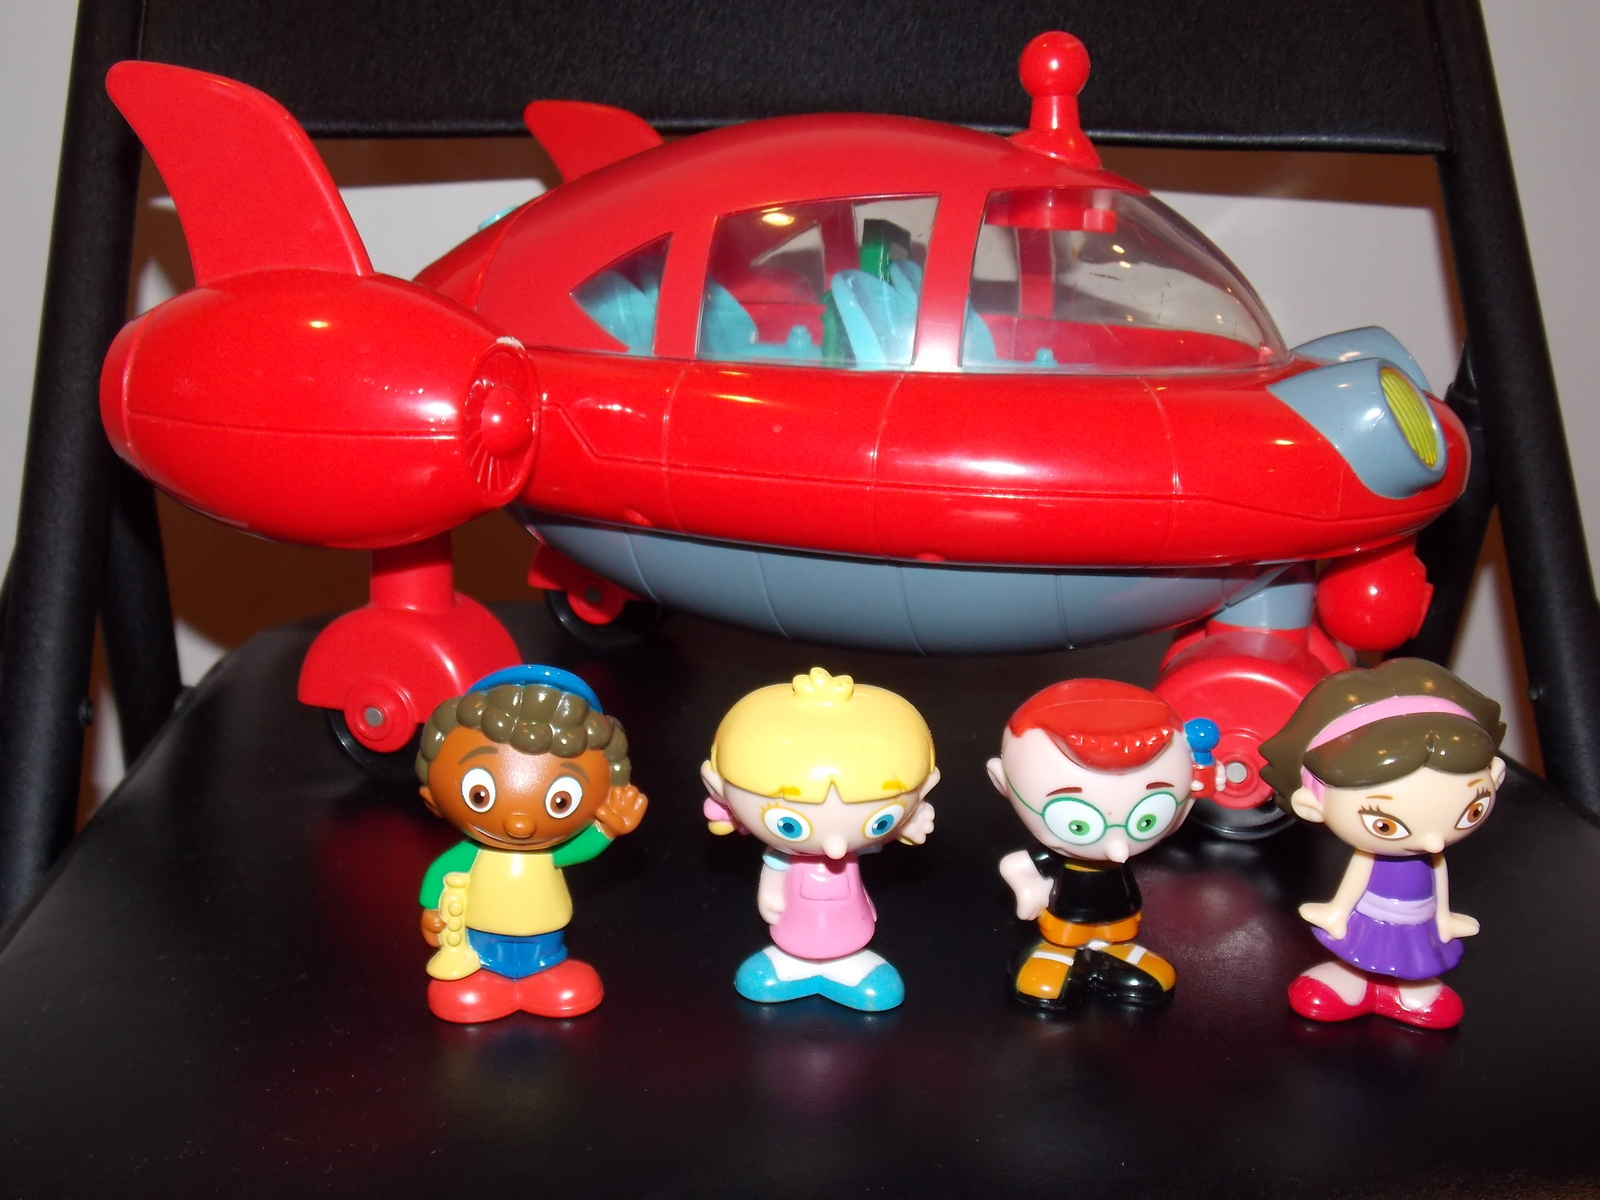 Disney little einsteins rocket ship toy with and 50 similar items